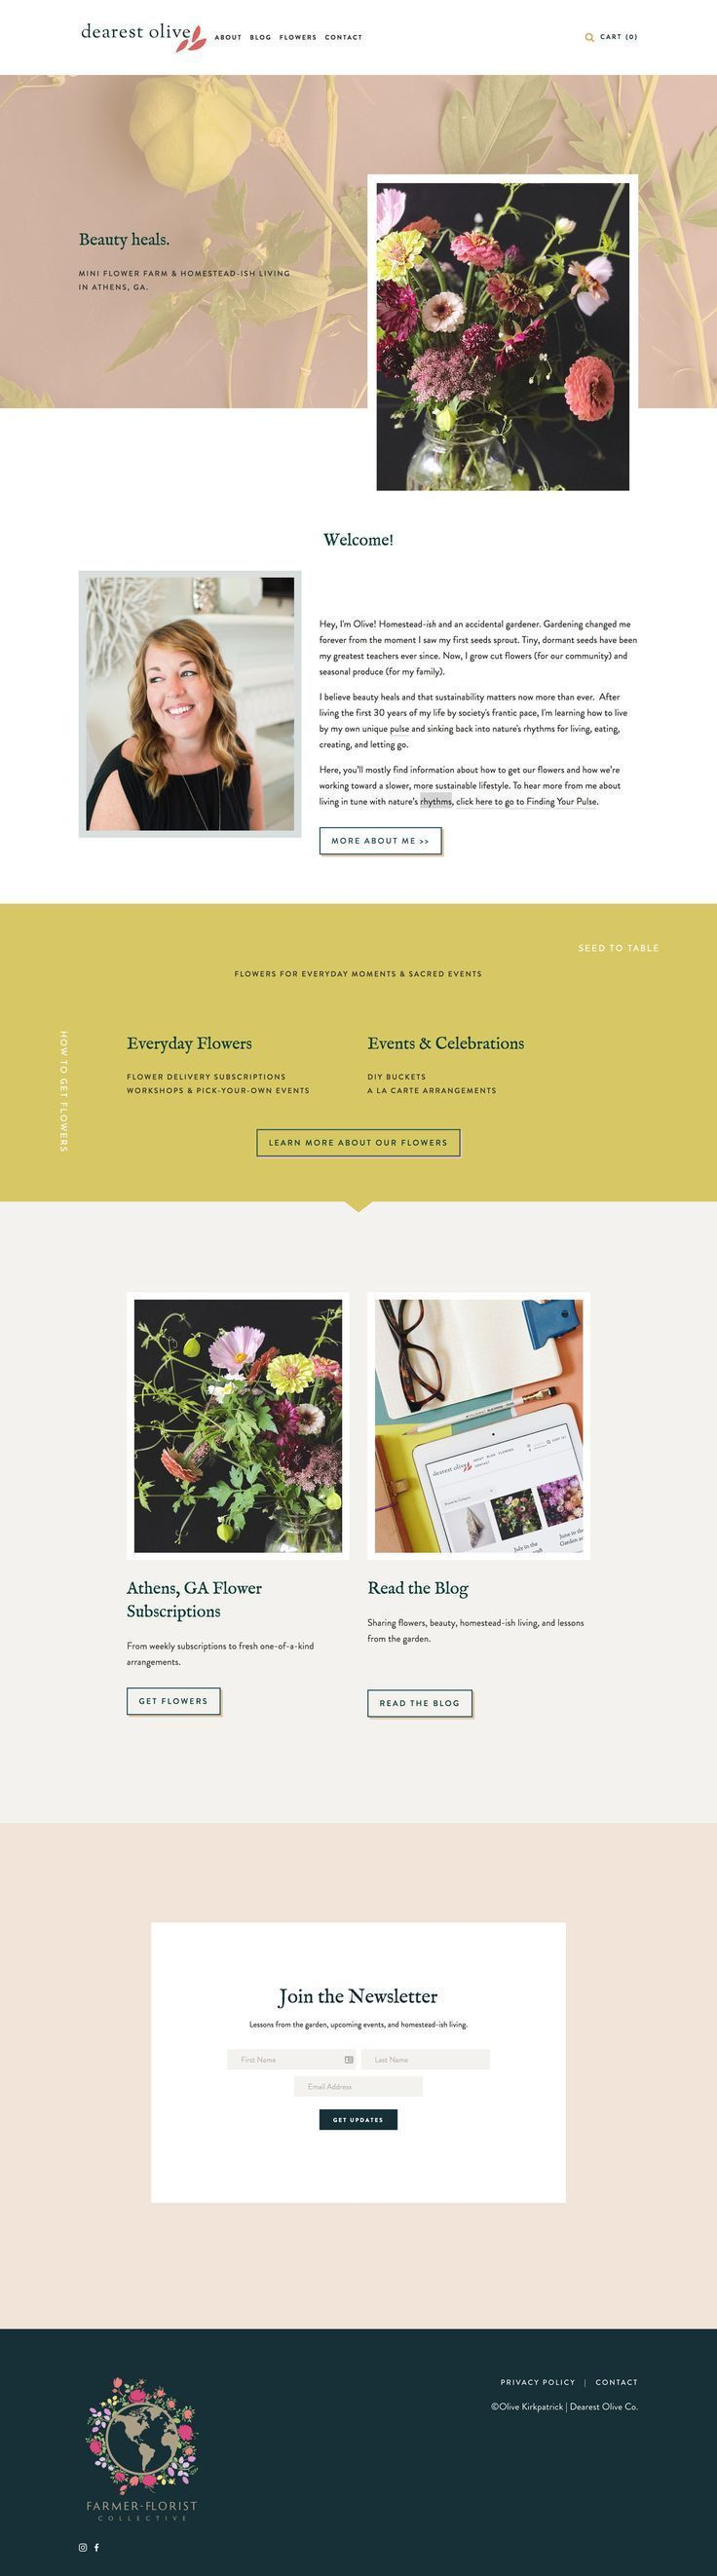 Eiderwild Squarespace Kit Station Seven Squarespace Templates Wordpress Themes And Free Resources For Creative Entrepreneurs Simple Website Design Branding Website Design Web Design